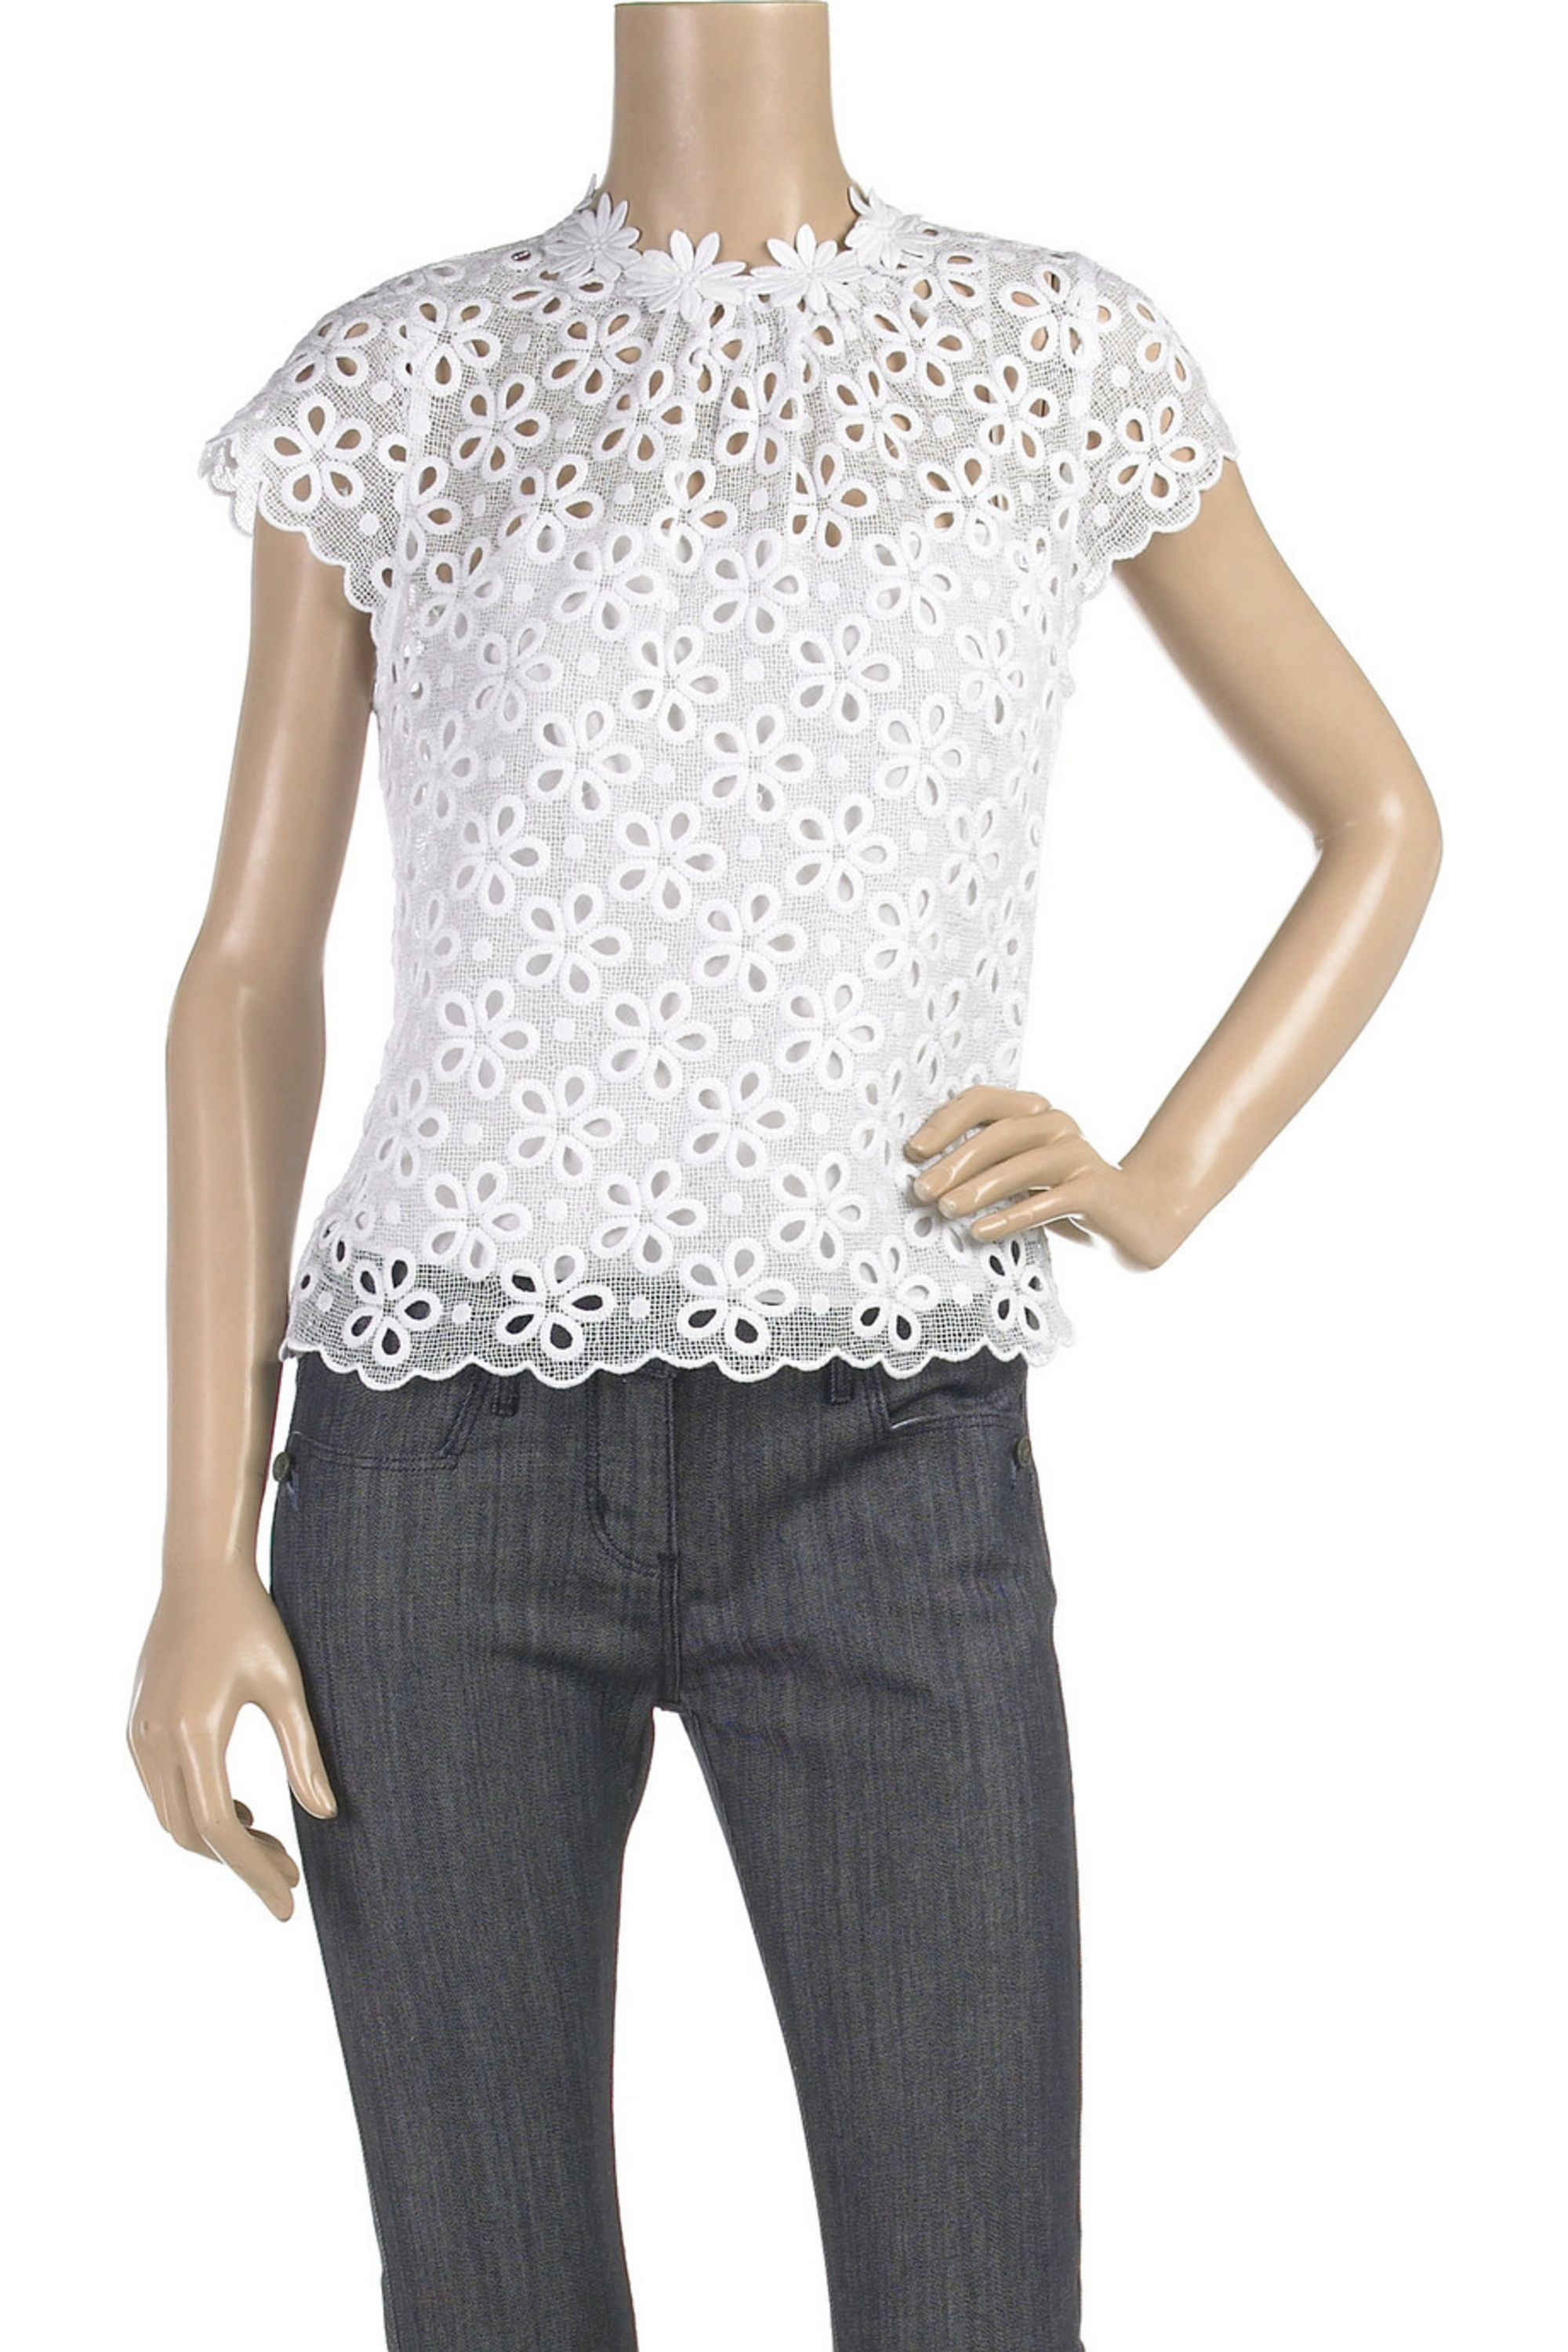 Milly Daisy cotton macrame top